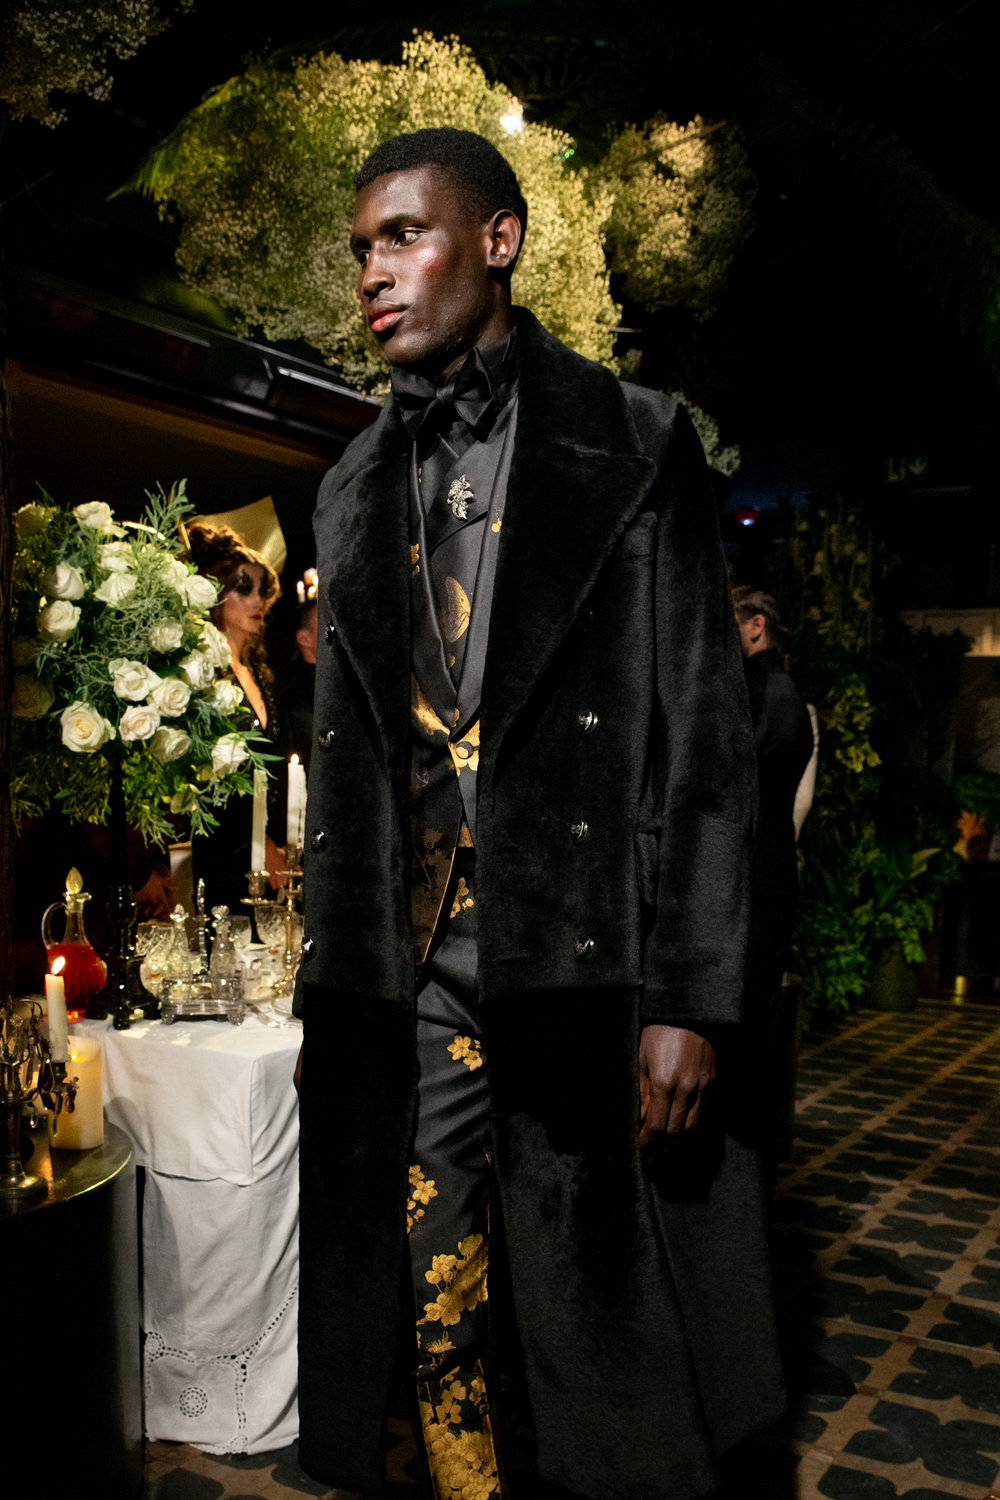 - FEATURED IN THIS LOOK£6200COATTHE GRAND COAT, BLACK SHEARLINGAVAILABLE THROUGH MADE-TO-ORDER£24202 PIECE SUITTHE EDWARD, BLACK & GOLD FALLING BLOSSOM SILK JAQUARDAVAILABLE THROUGH MADE-TO-ORDER£675WAISTCOAT THE BEAU, BLACK & GOLD FALLING BLOSSOM SILK JAQUARDAVAILABLE THROUGH MADE-TO-ORDER £450SHIRT THE WALTER WING TIP COLLAR DRESS SHIRT, BLACK COTTONAVAILABLE THROUGH MADE-TO-ORDER£120ACCESSORIEWIDE BOWTIE, BLACK SILKAVAILABLE THROUGH READY-TO-WEARACCESSORIEBROOCH, SILVER WITH DIAMOND GEMSTONESAVAILABLE THROUGH MADE-TO-ORDER£710BOOTSTHE LOUIS, BLACK PATENT WITH GOLD METAL TRIMAVAILABLE THROUGH MADE-TO-ORDER__________________________BOOK A MADE-TO-ORDER APPOINTMENT